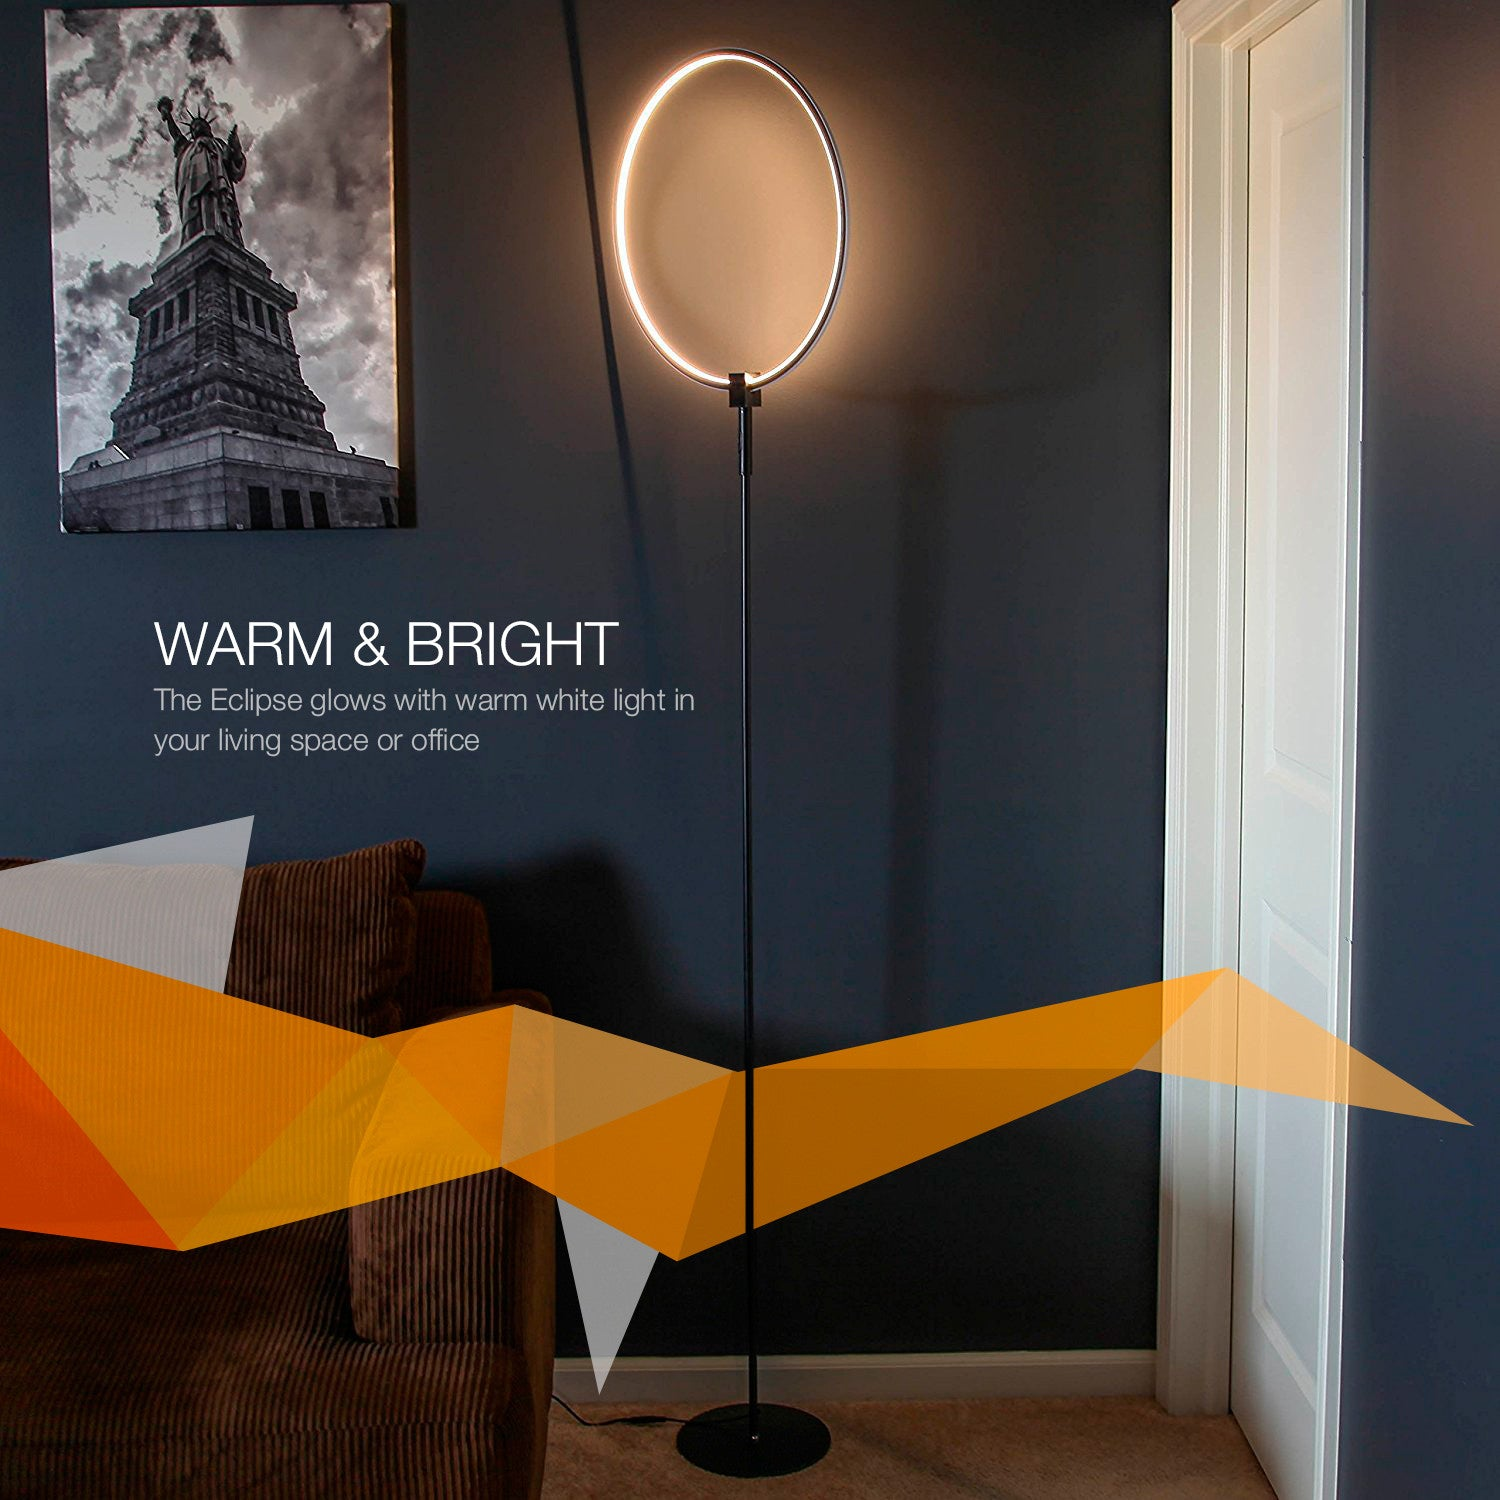 Brightech store eclipse led floor lamp single ring ring of brightech store eclipse led floor lamp single ring ring of light brings sci fi ambiance to contemporary spaces 15 watts dimmable bright light parisarafo Choice Image